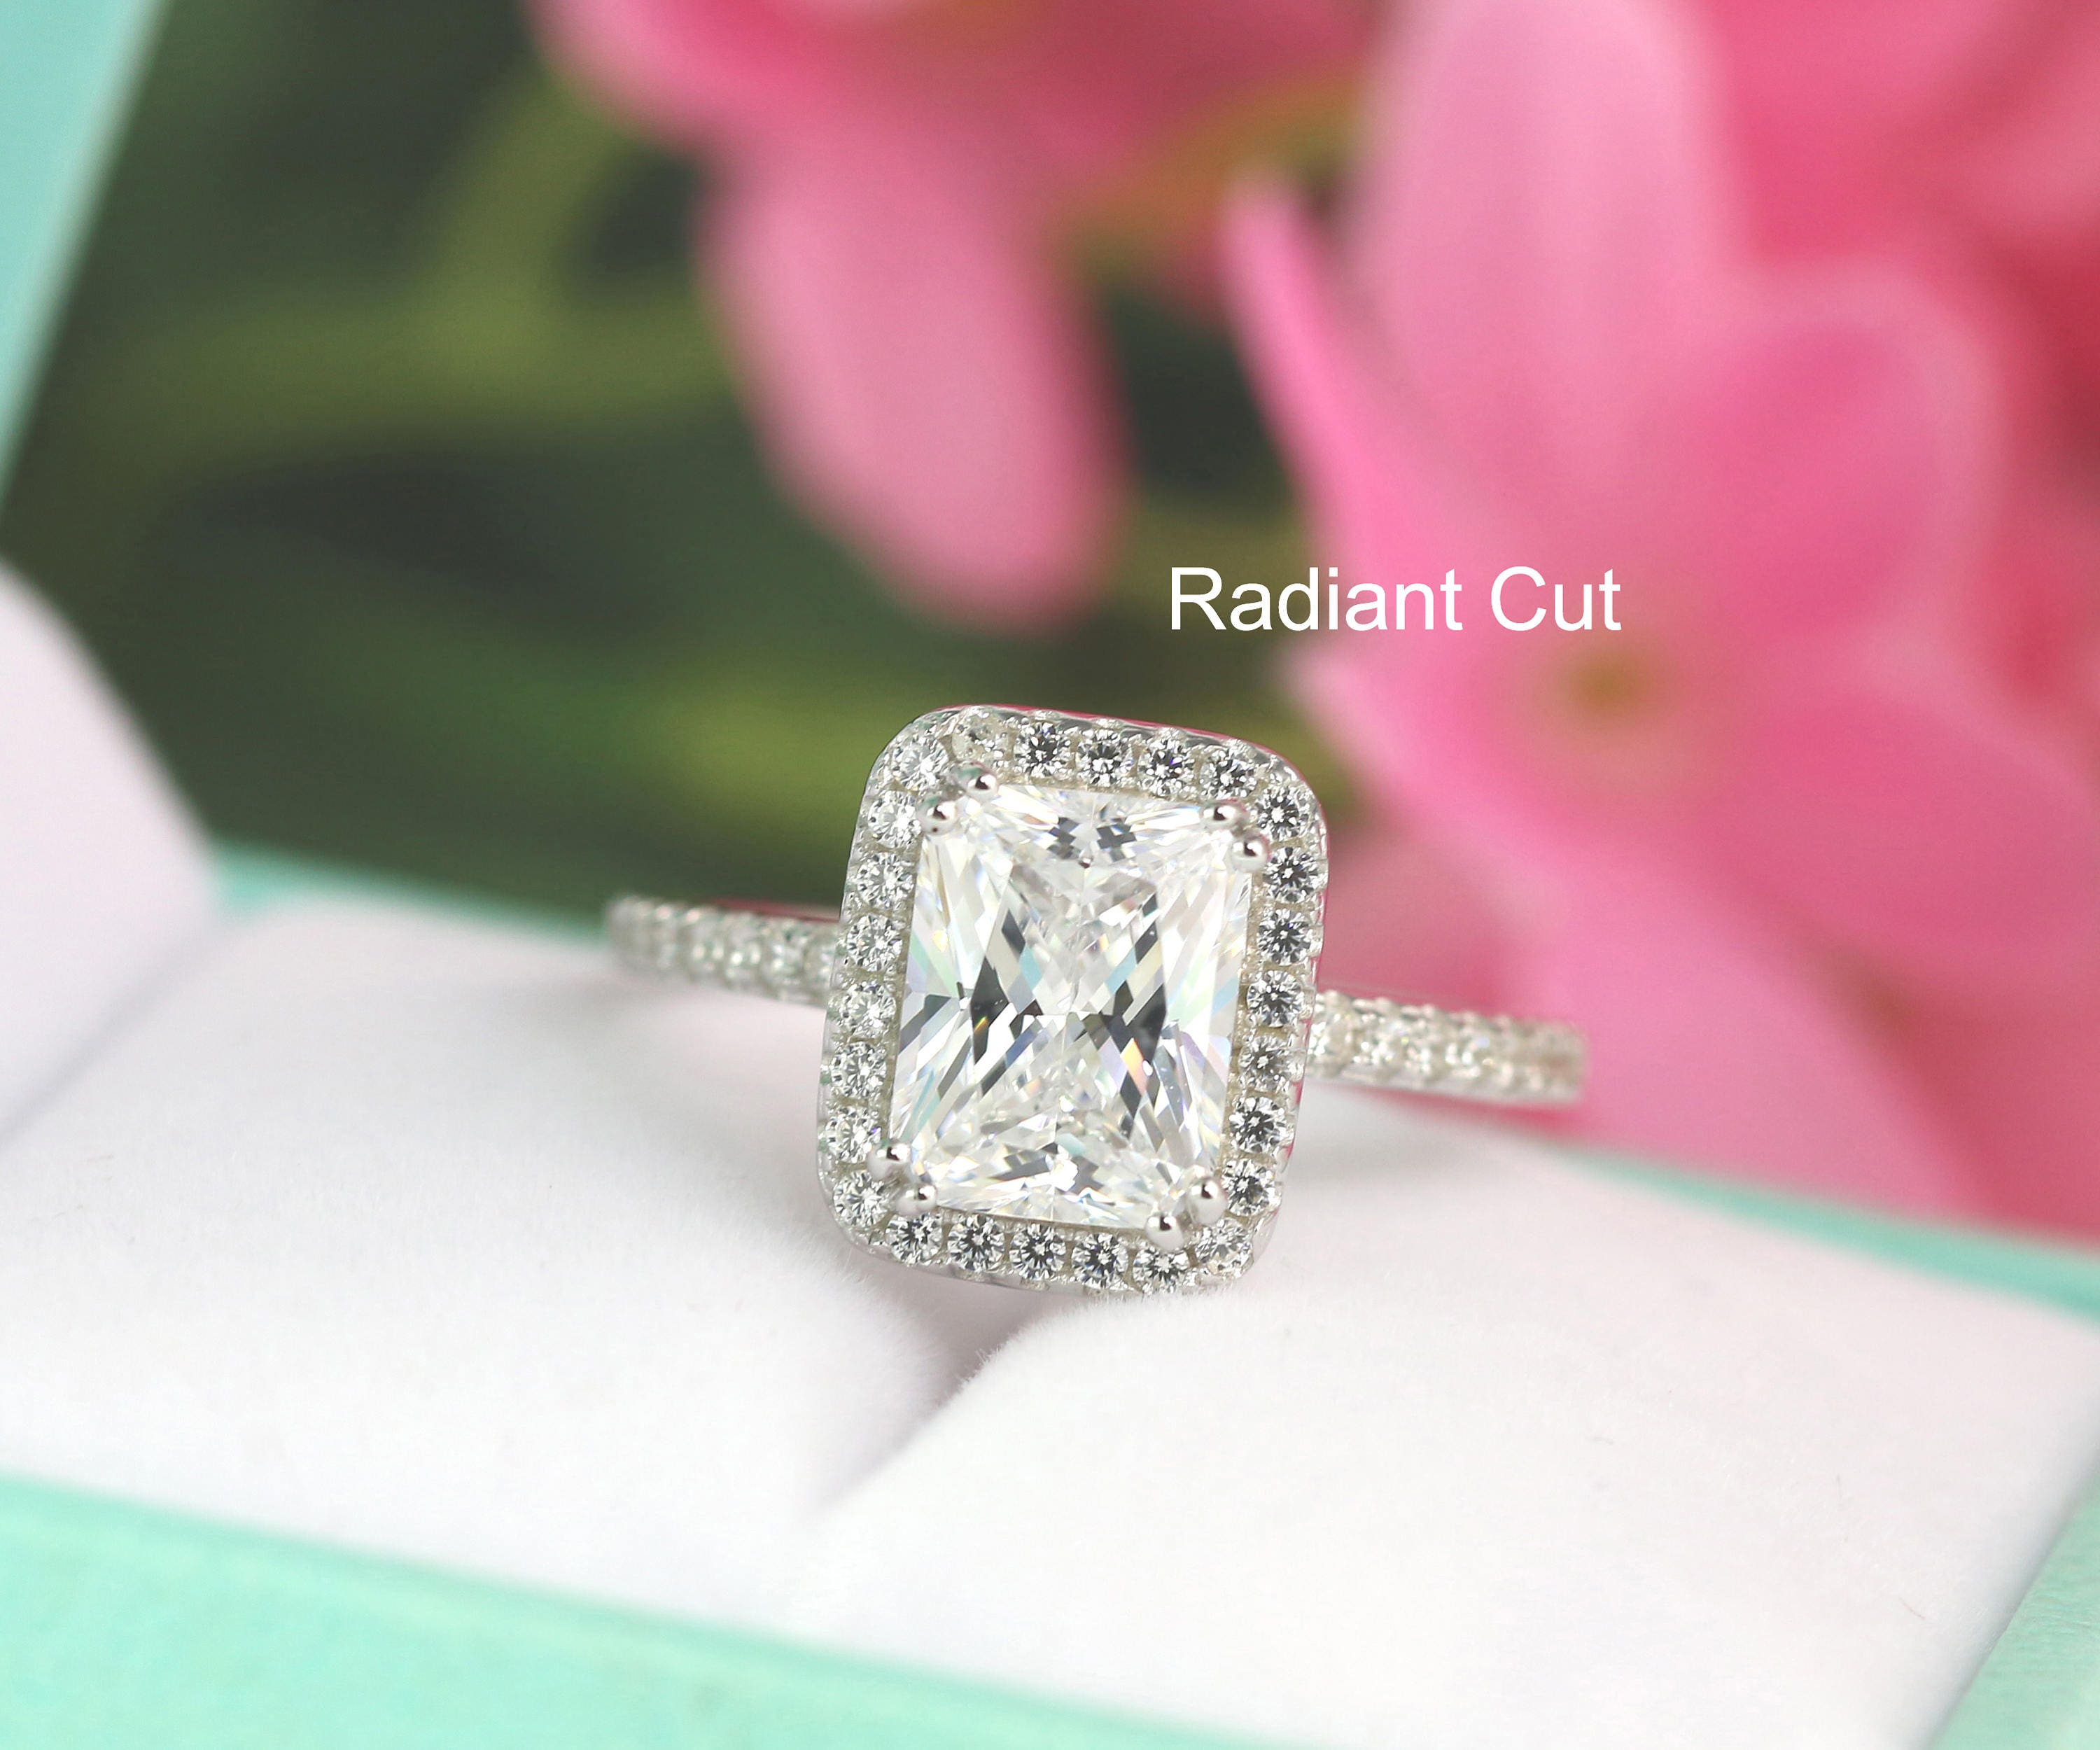 radiant sku cut trellis engagement diamond trillion ring wedding rings three stone gold white